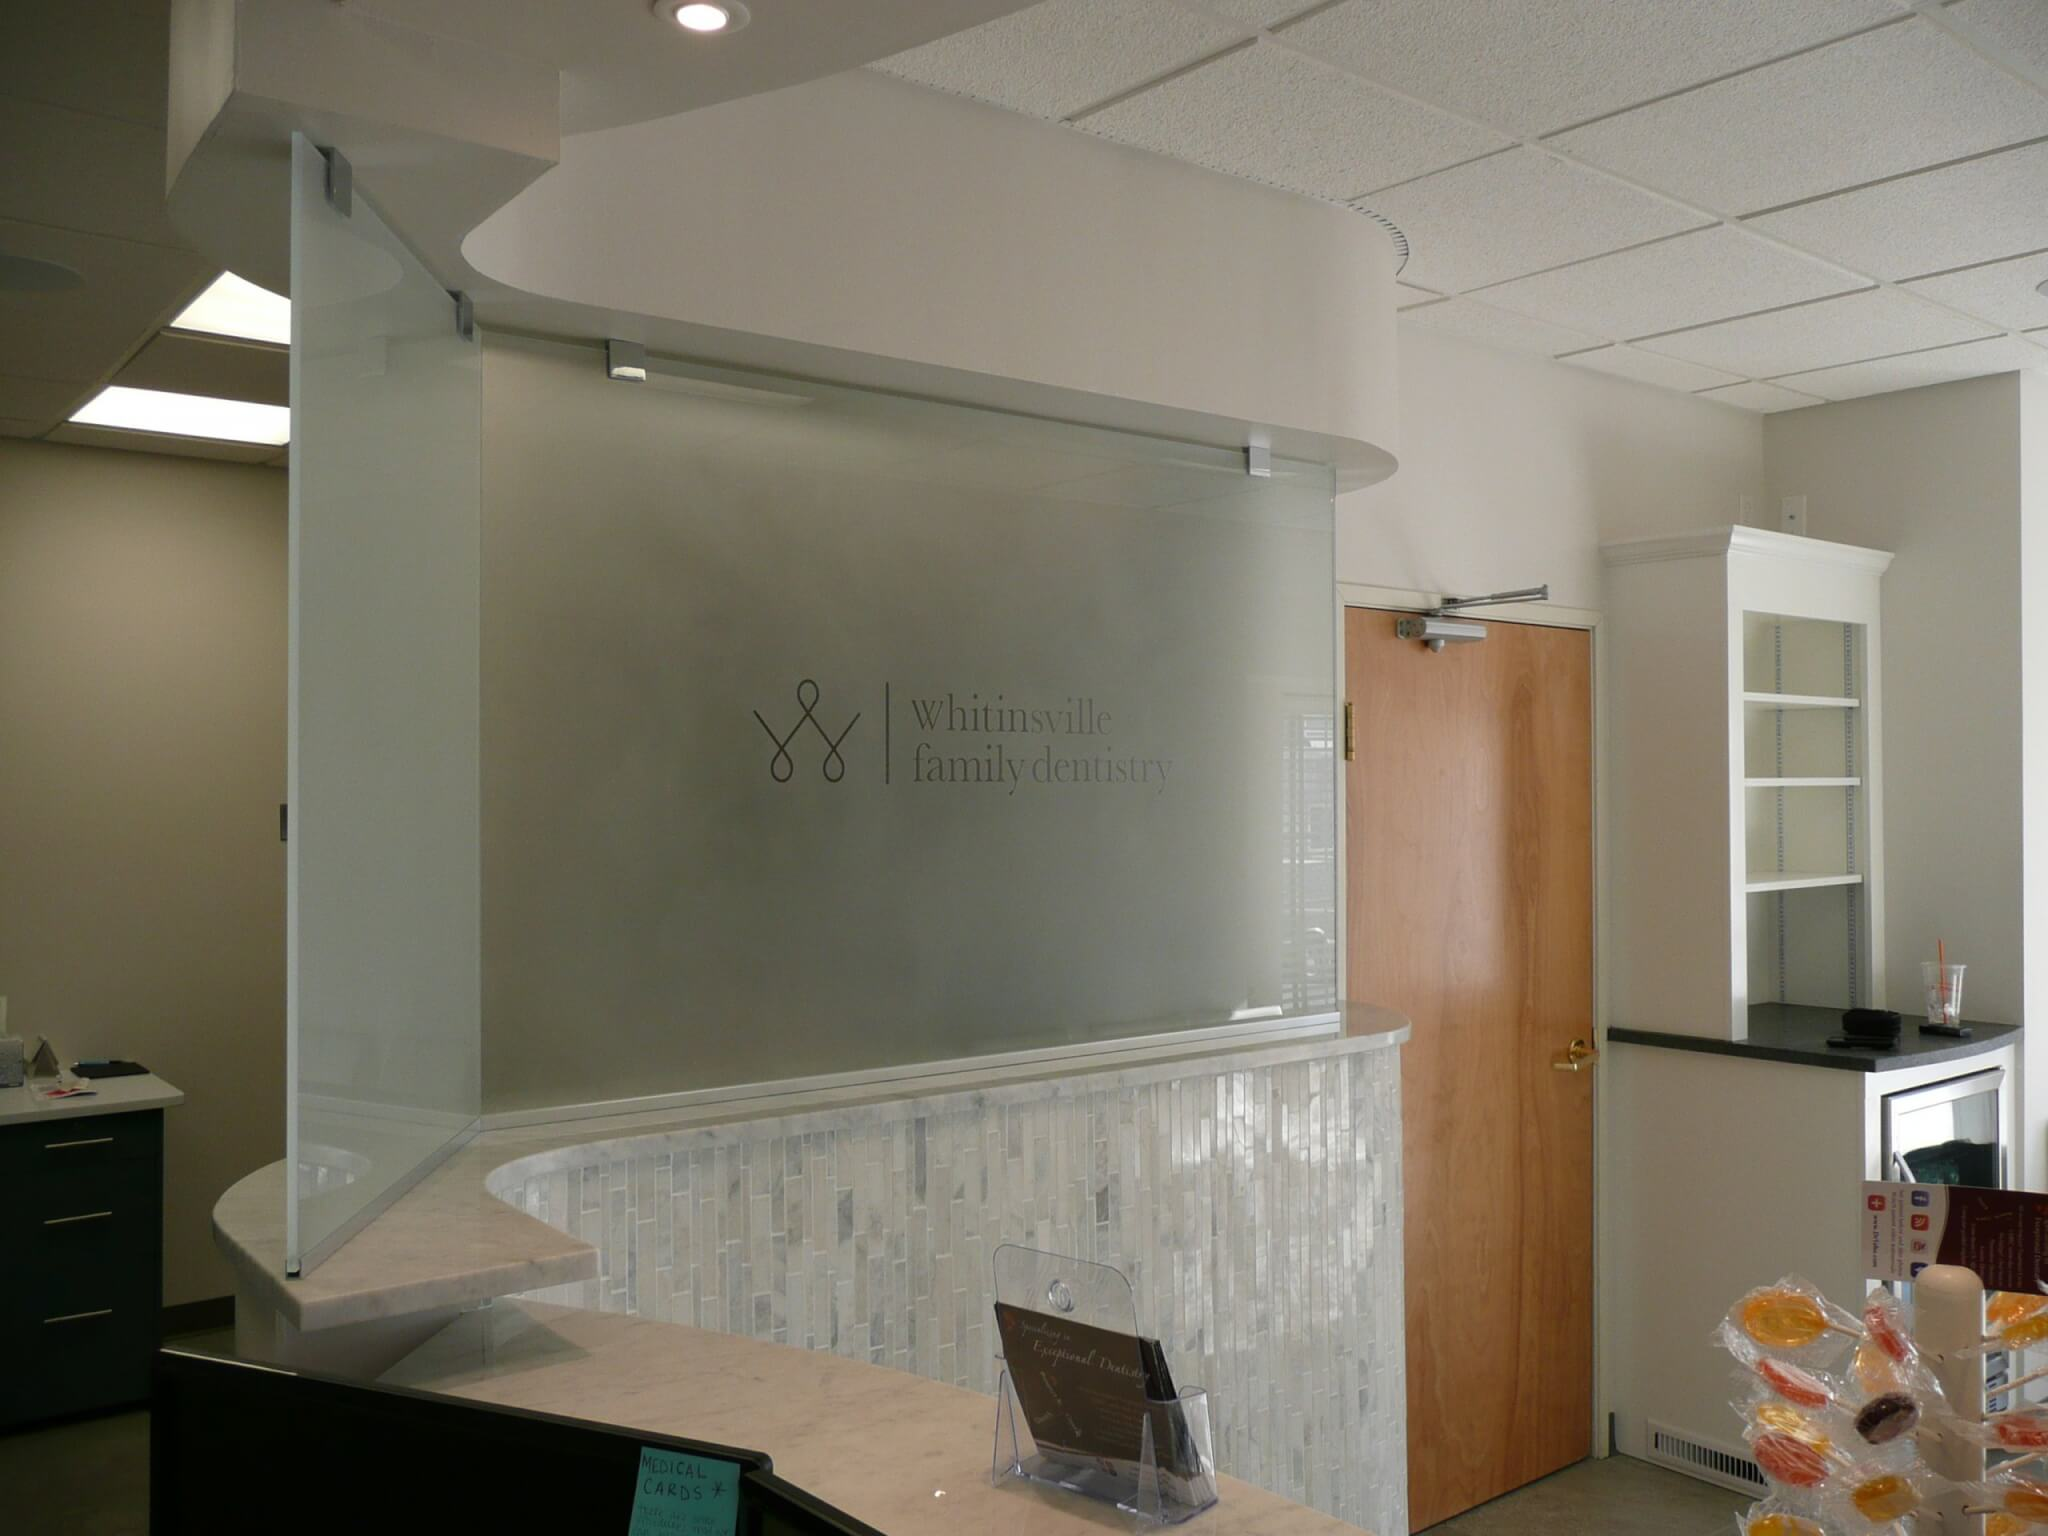 Privacy Glass installed in office